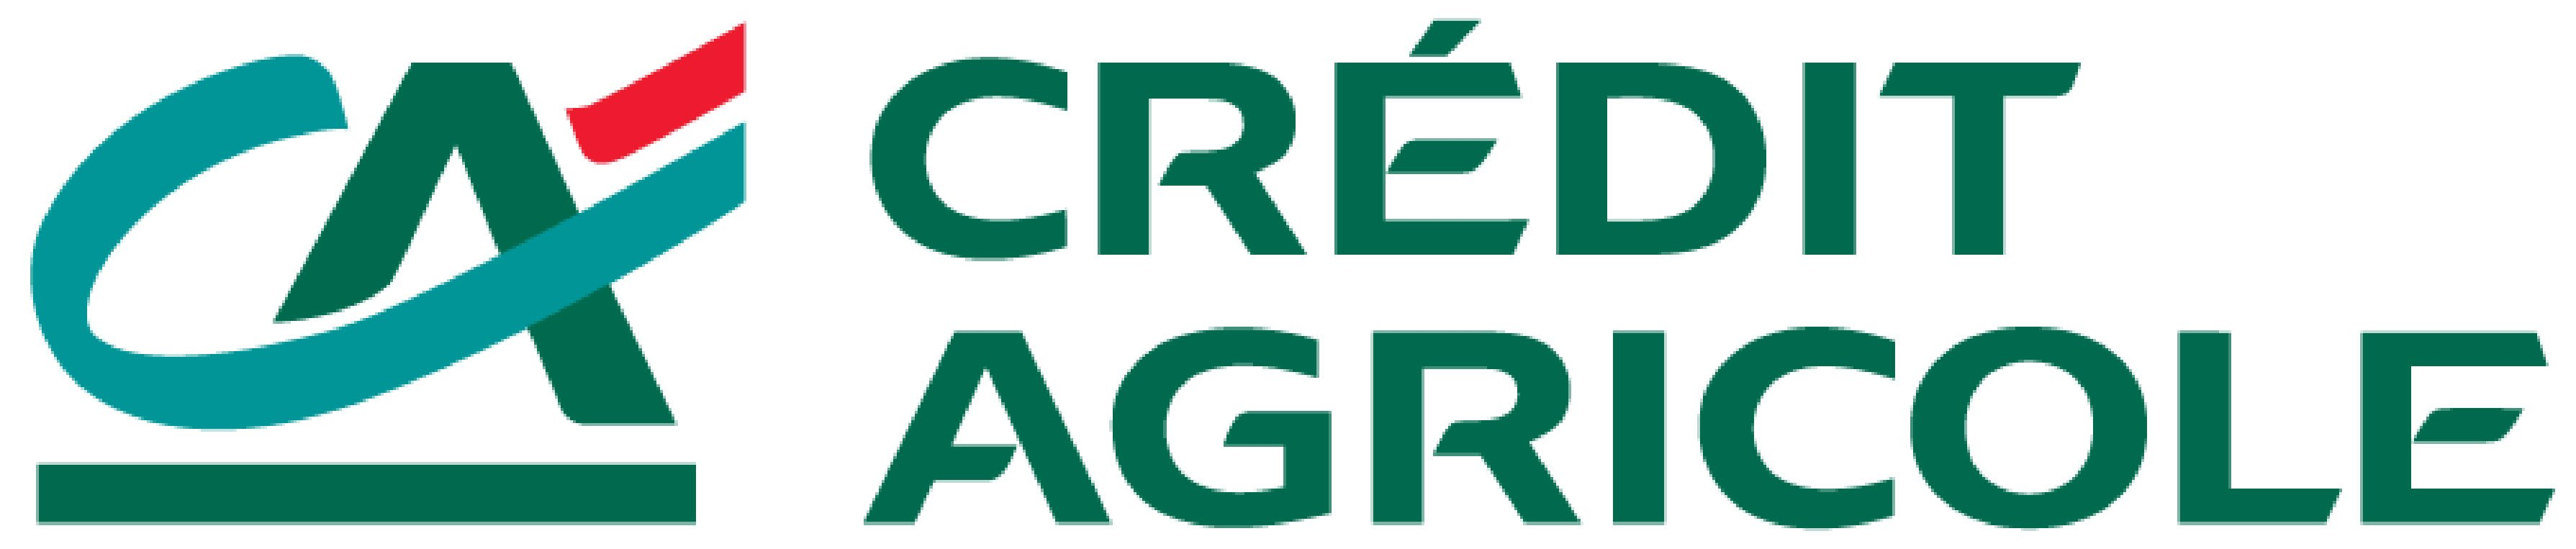 credit agricole Disposal of the life insurance activity of the april group (axéria vie and april  patrimoine) to crédit agricole assurances acquisition of w finance (part of  allianz).